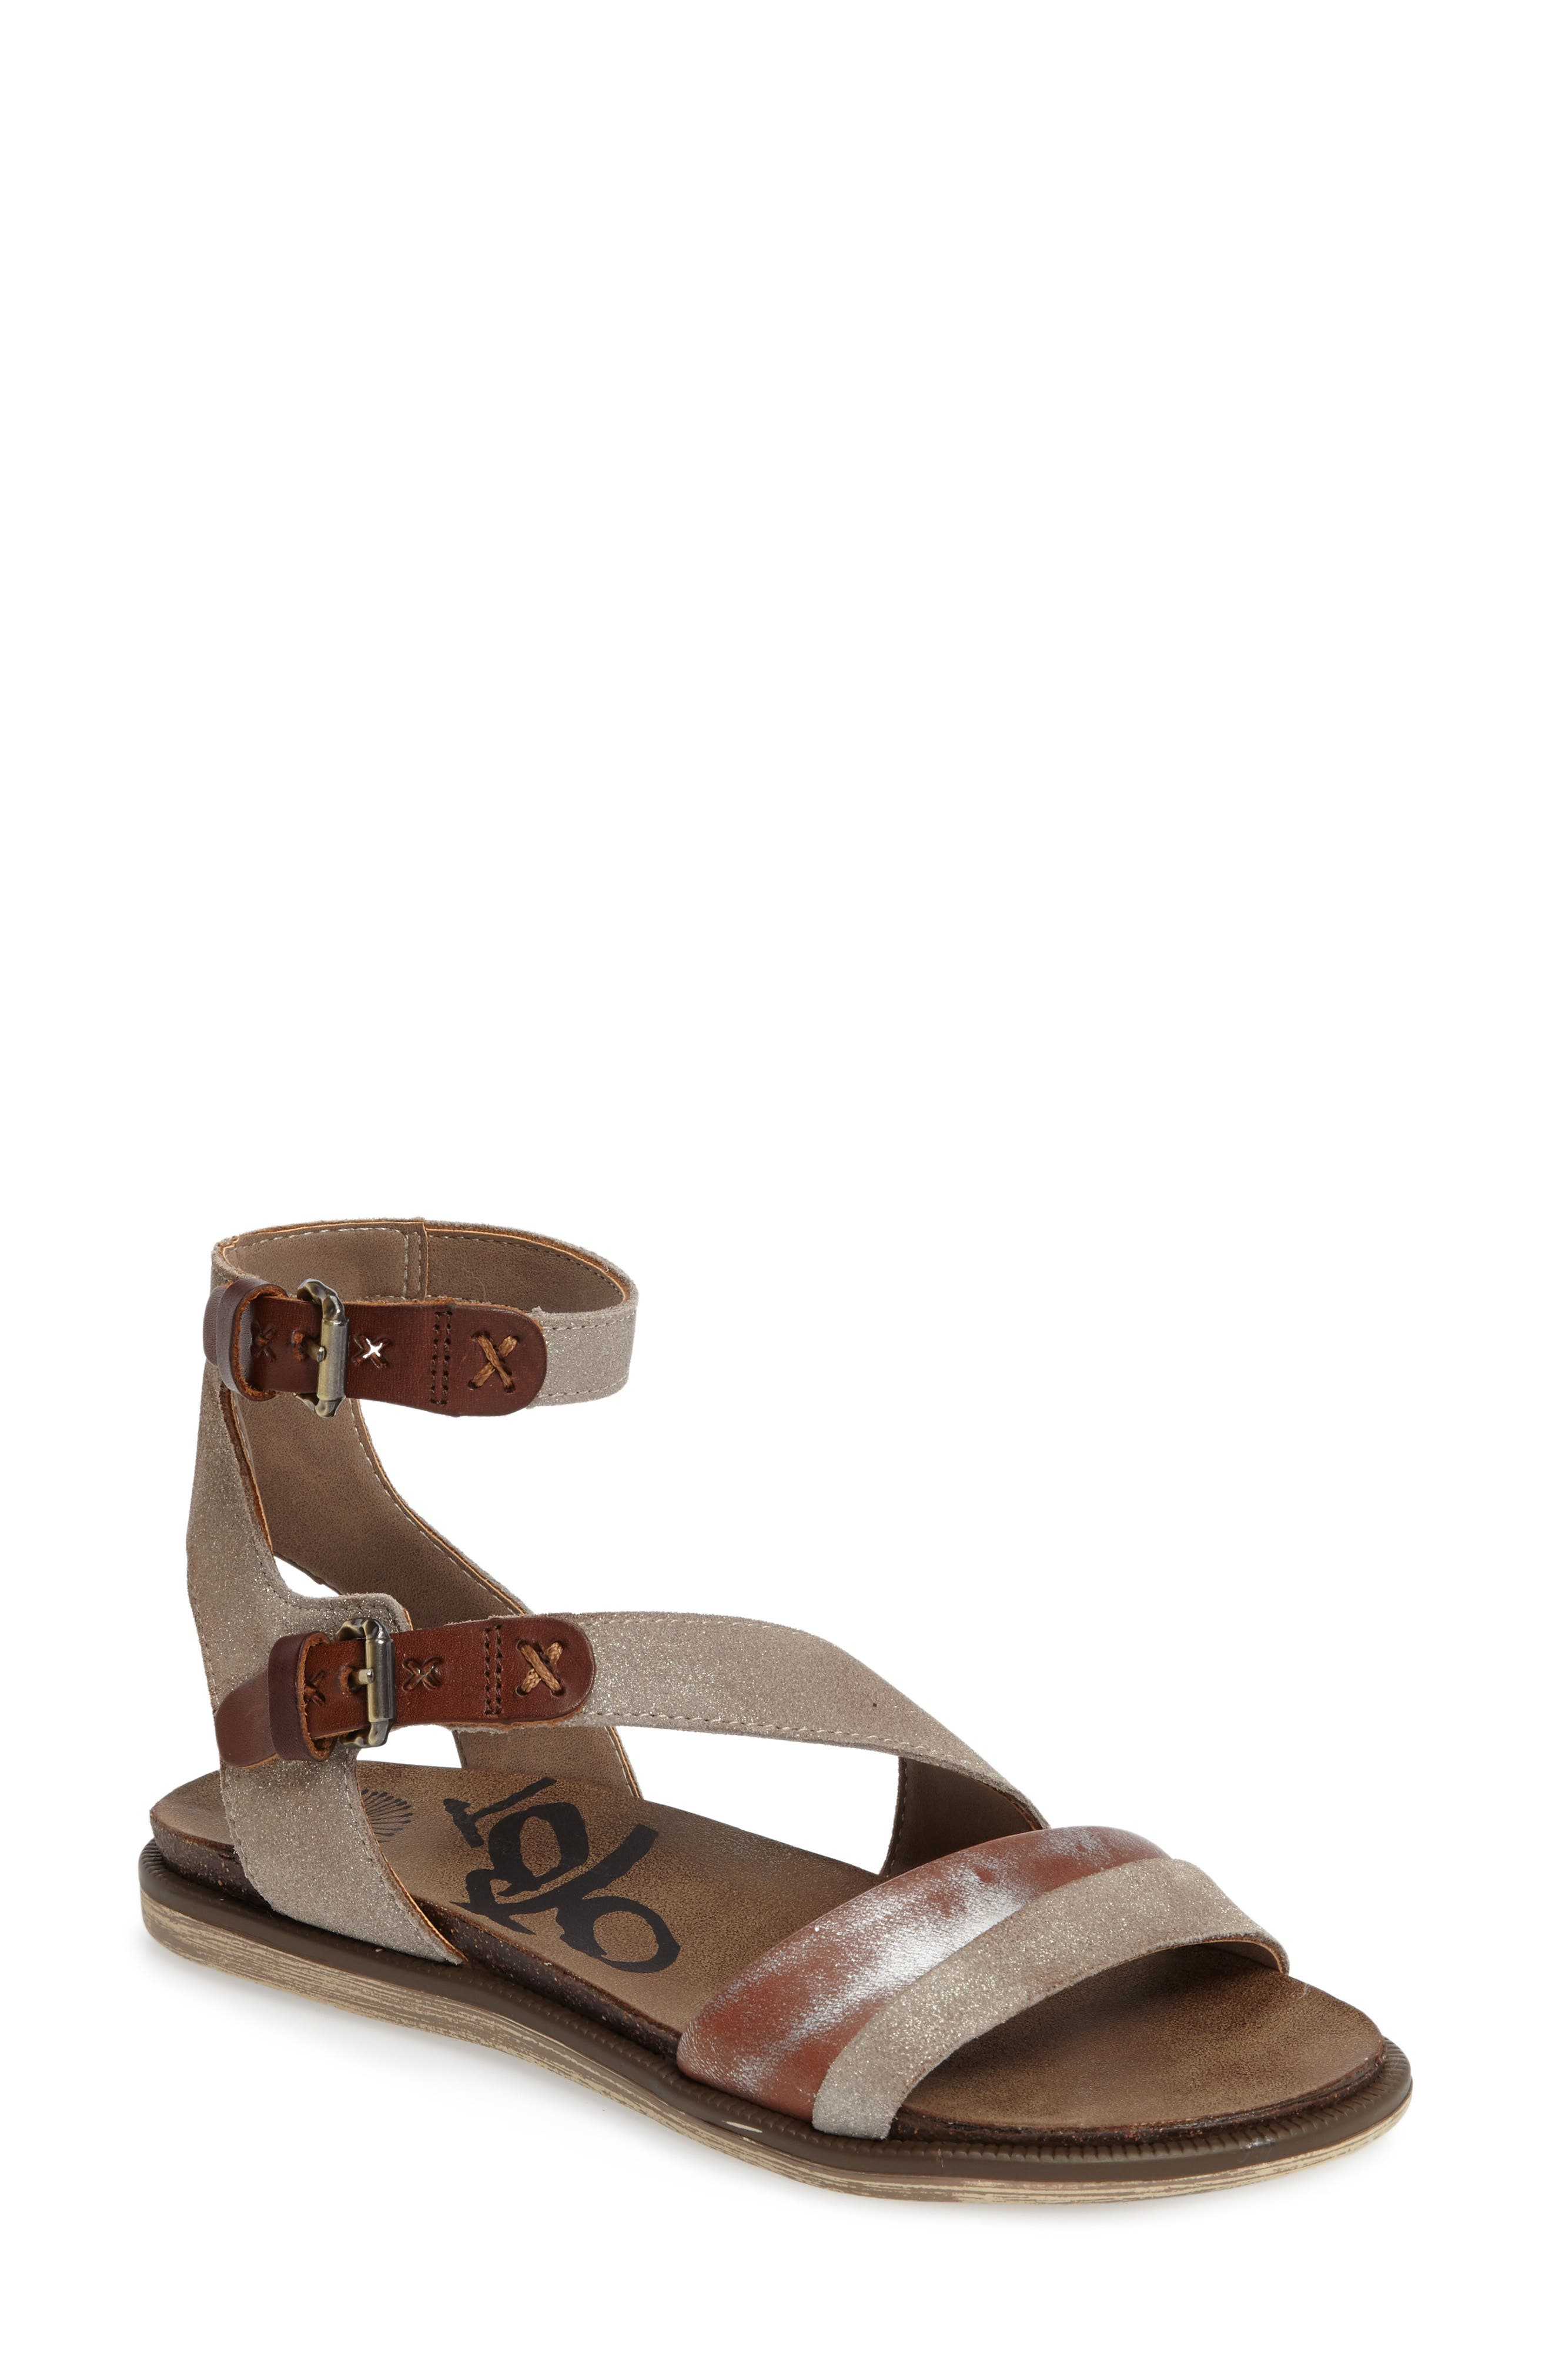 March On Flat Sandal,                         Main,                         color, Grey Silver Leather